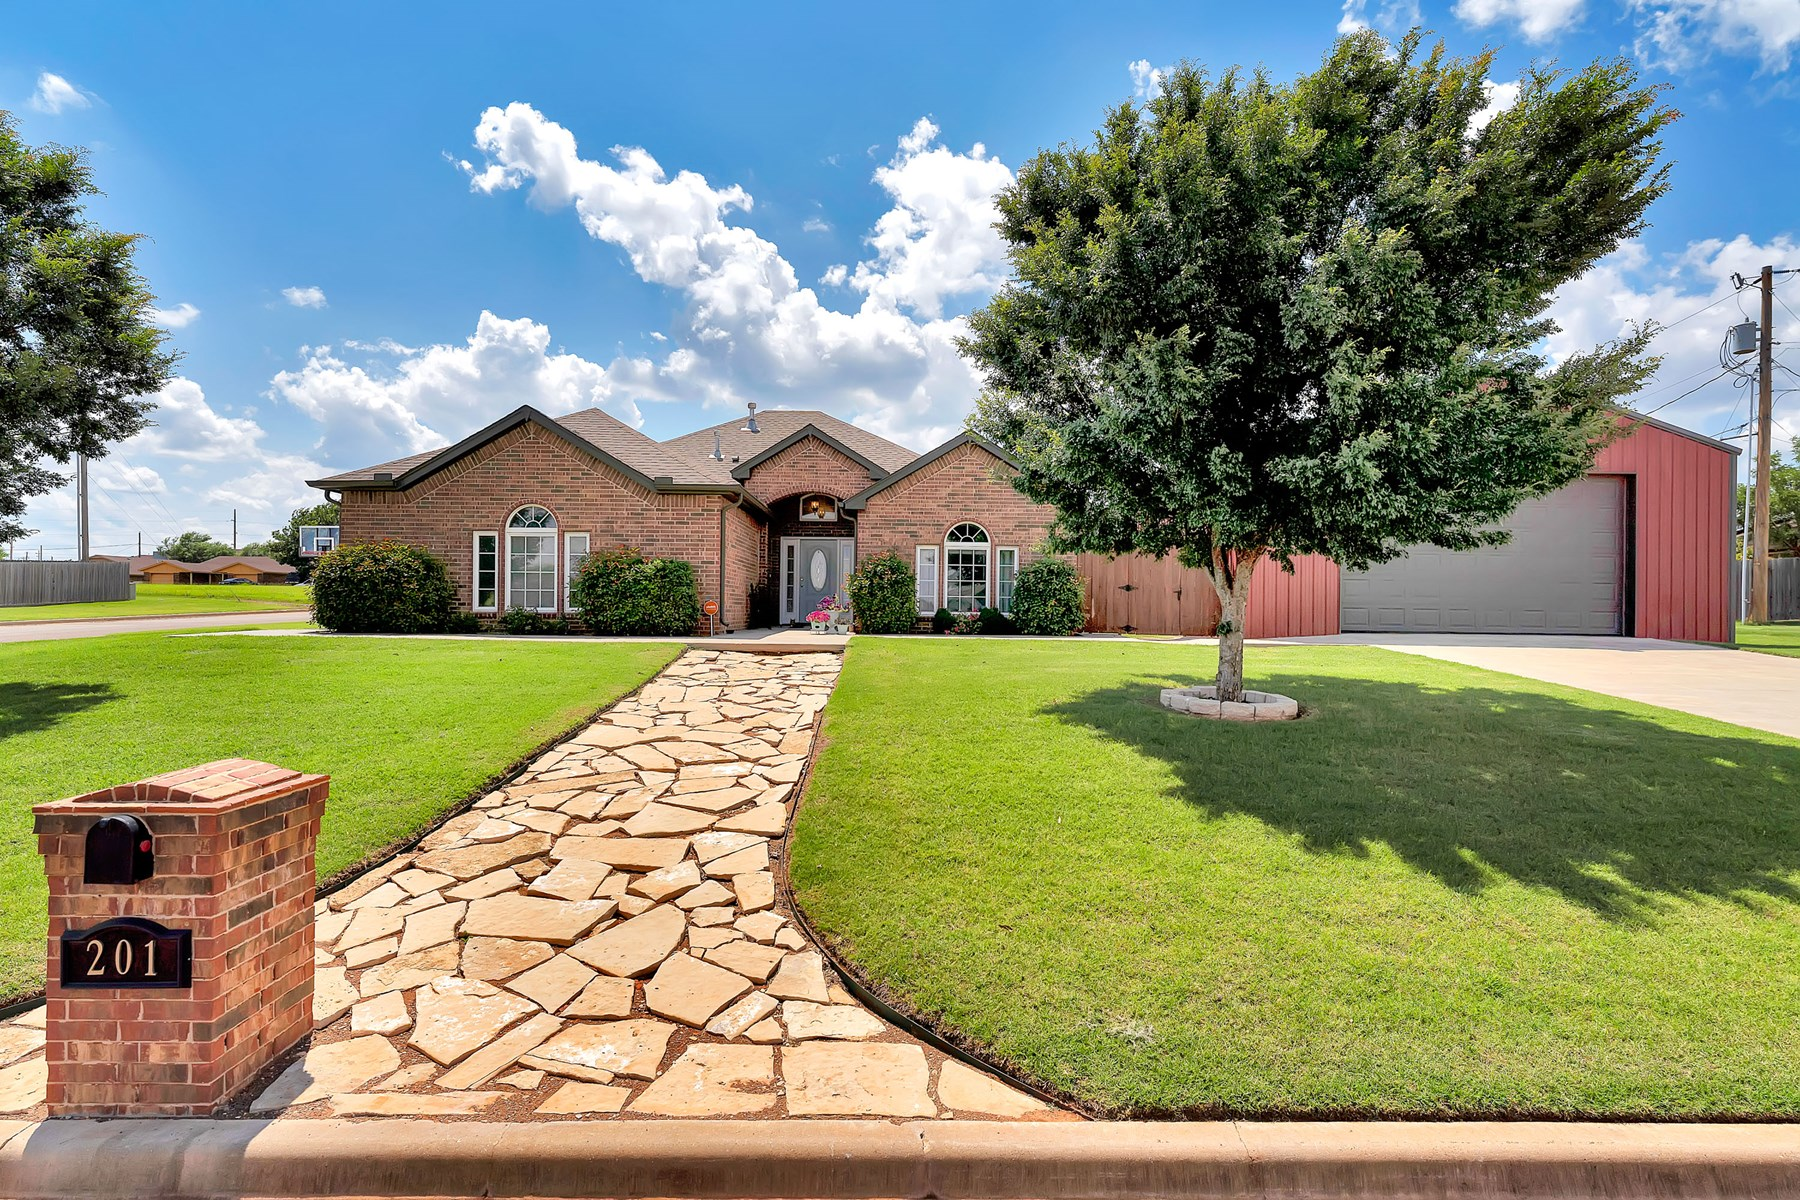 BEAUTIFUL HOME FOR SALE IN ELK CITY